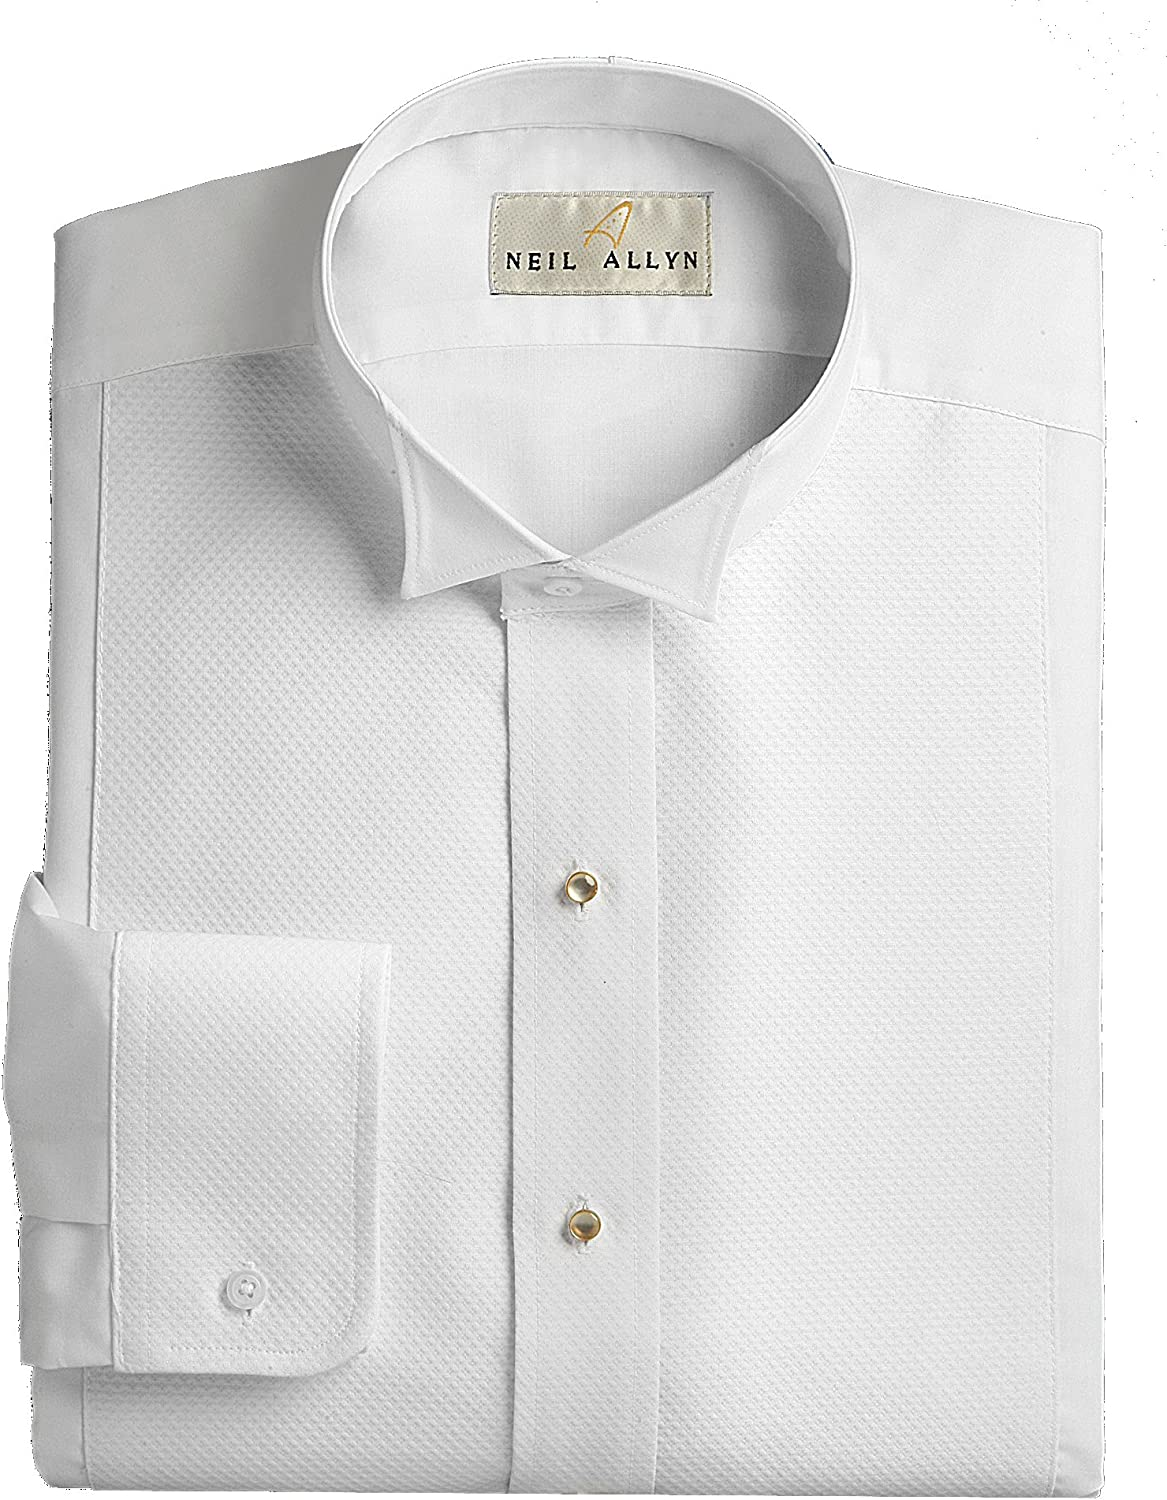 White viyella shirt with peter collar by Fina Ejerique